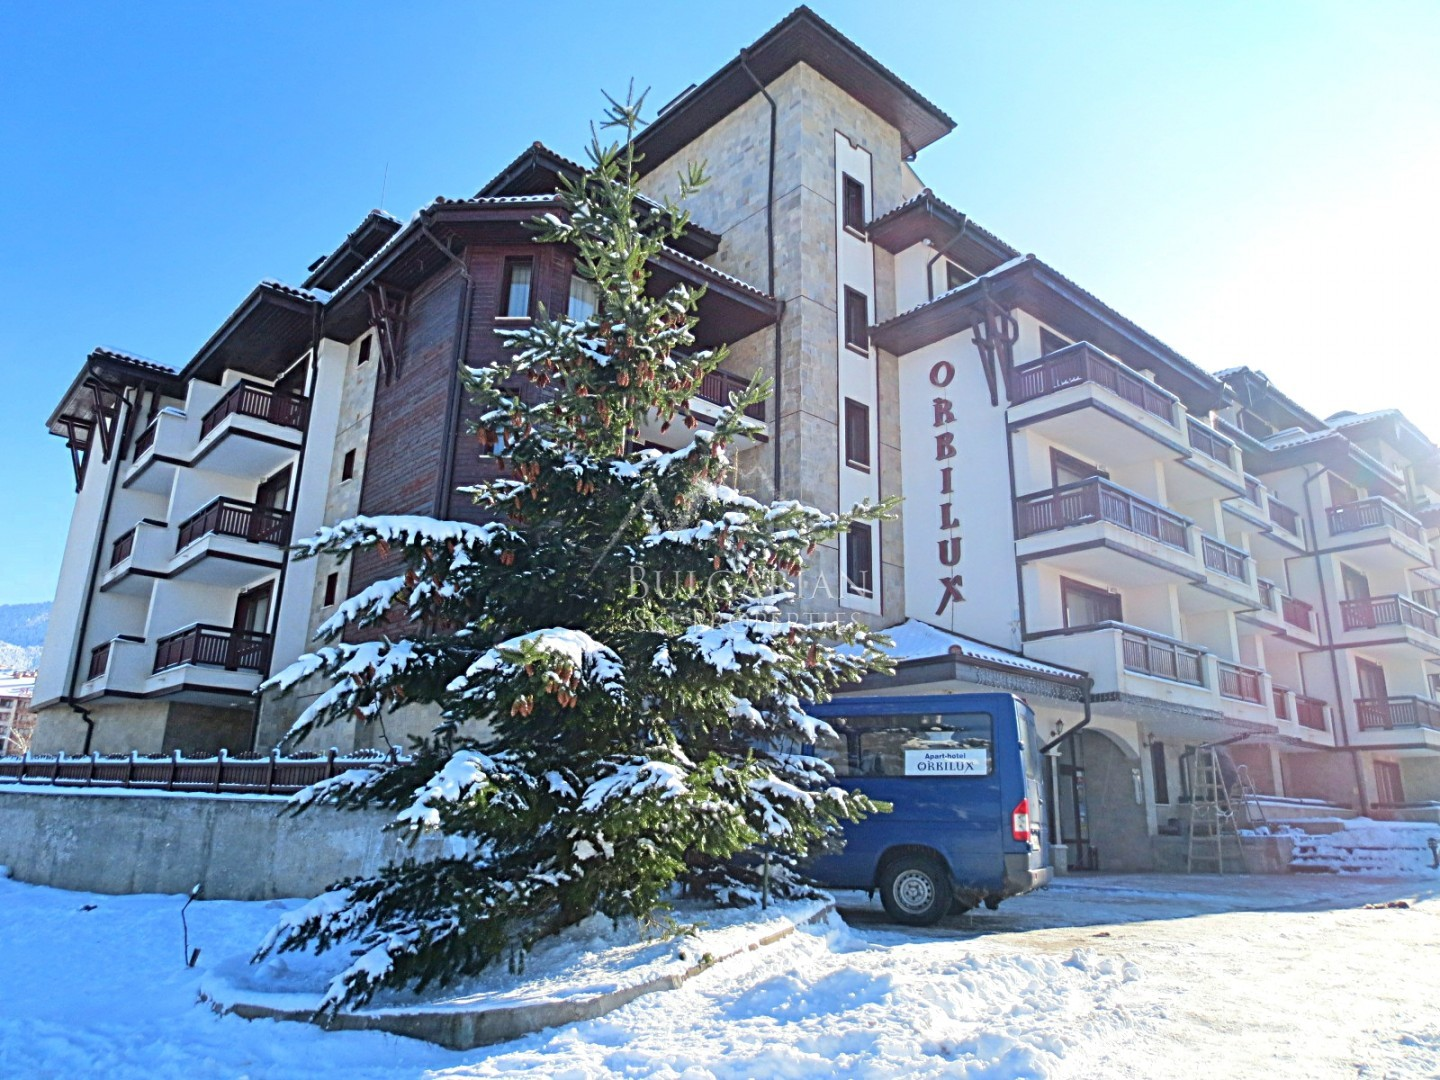 Bansko: furnished one bedroom apartment for sale in Orbilux complex